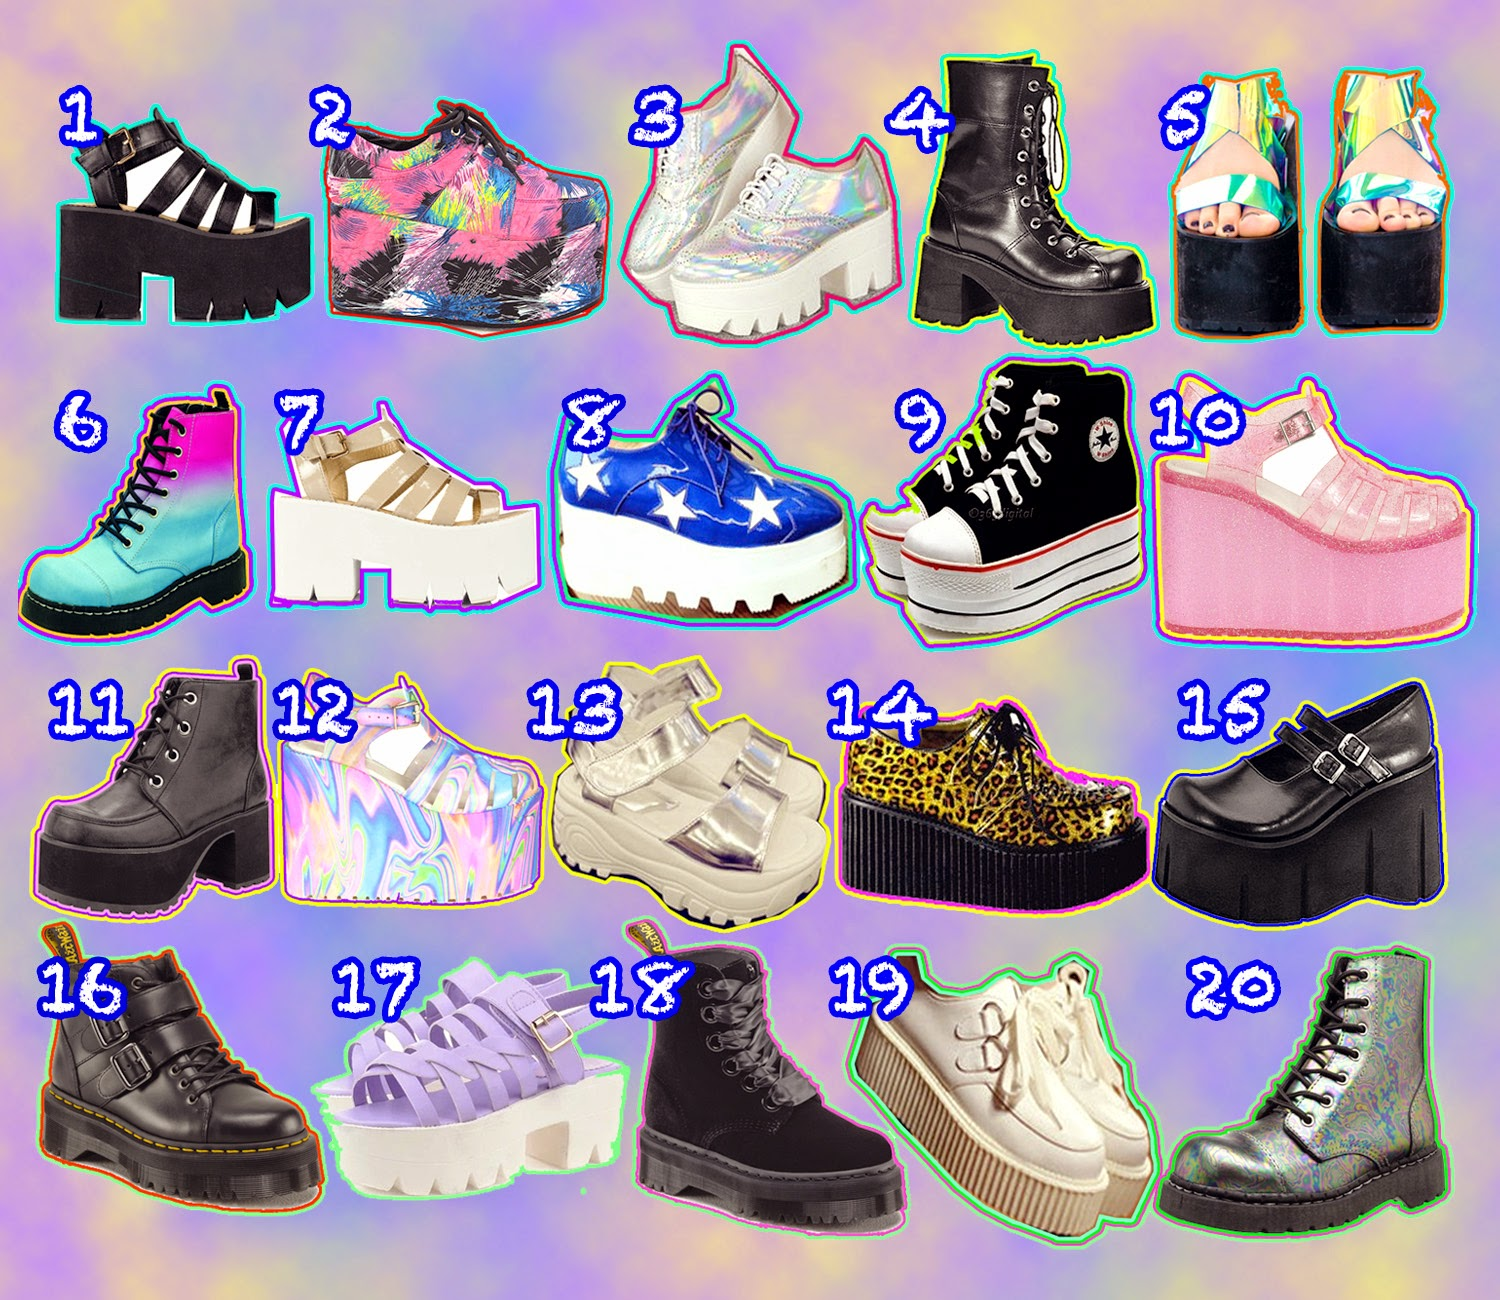 CLUMPY SHOE WISHLIST